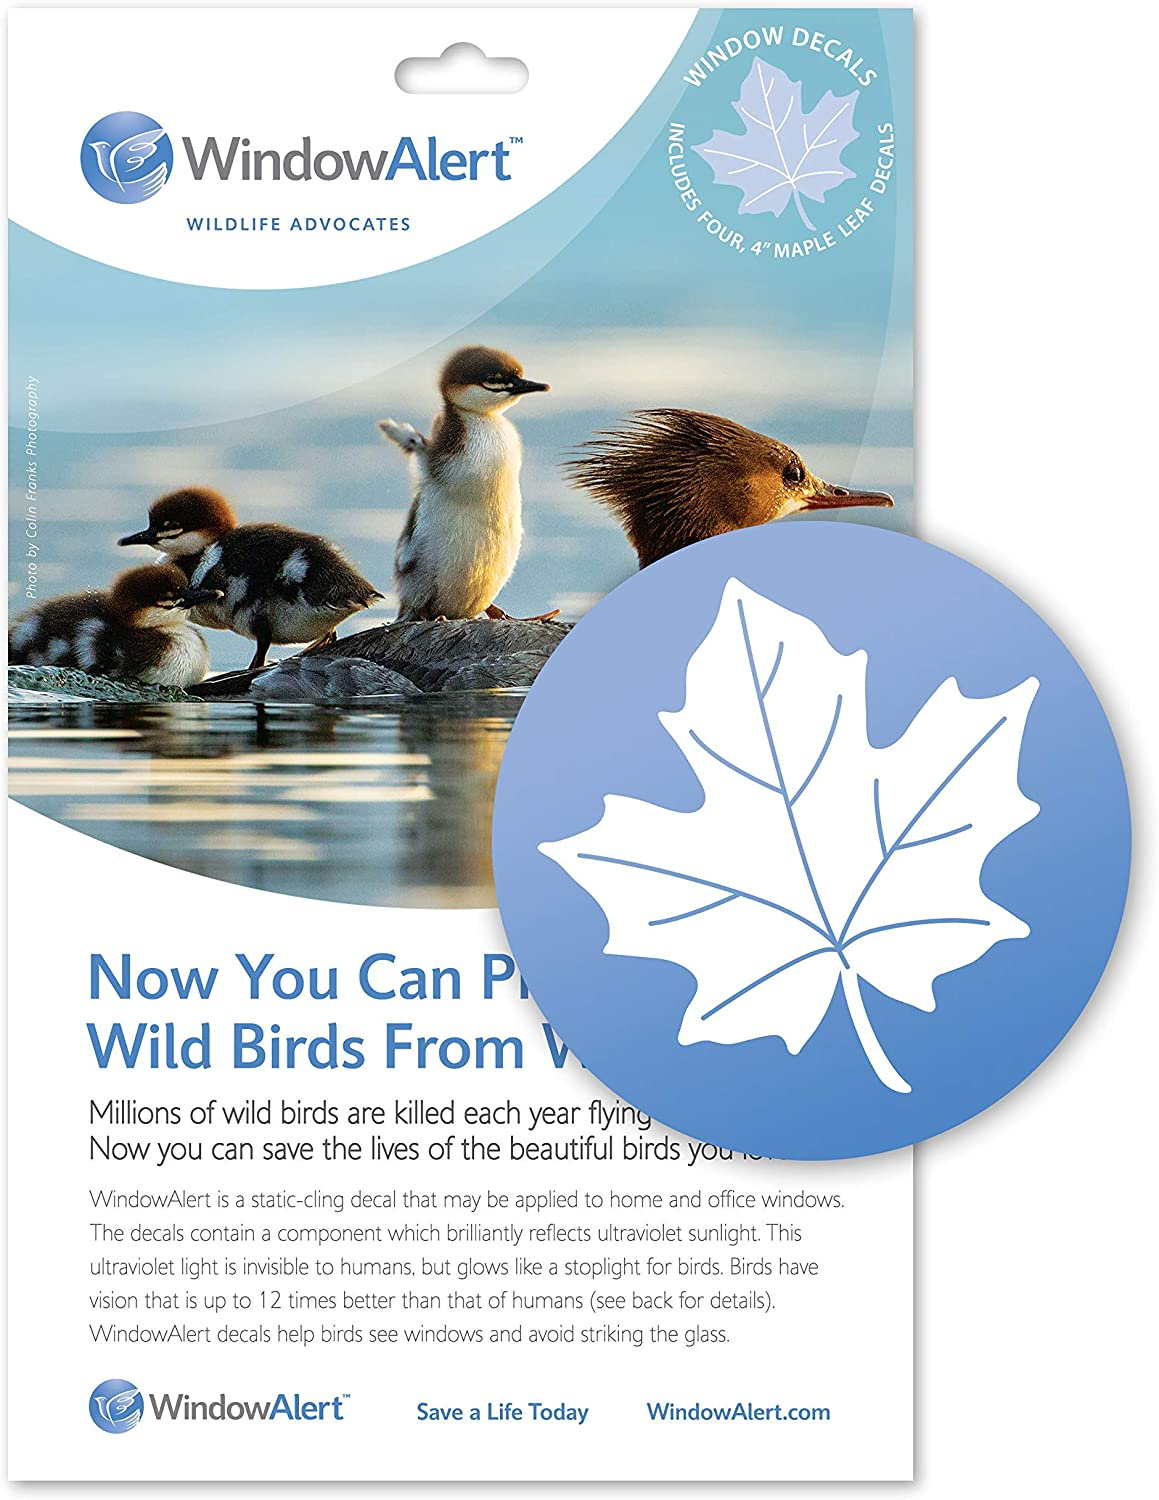 WindowAlert Mapleleaf Anti-Collision Decal - UV-Reflective Window Decal to Protect Wild Birds from Glass Collisions